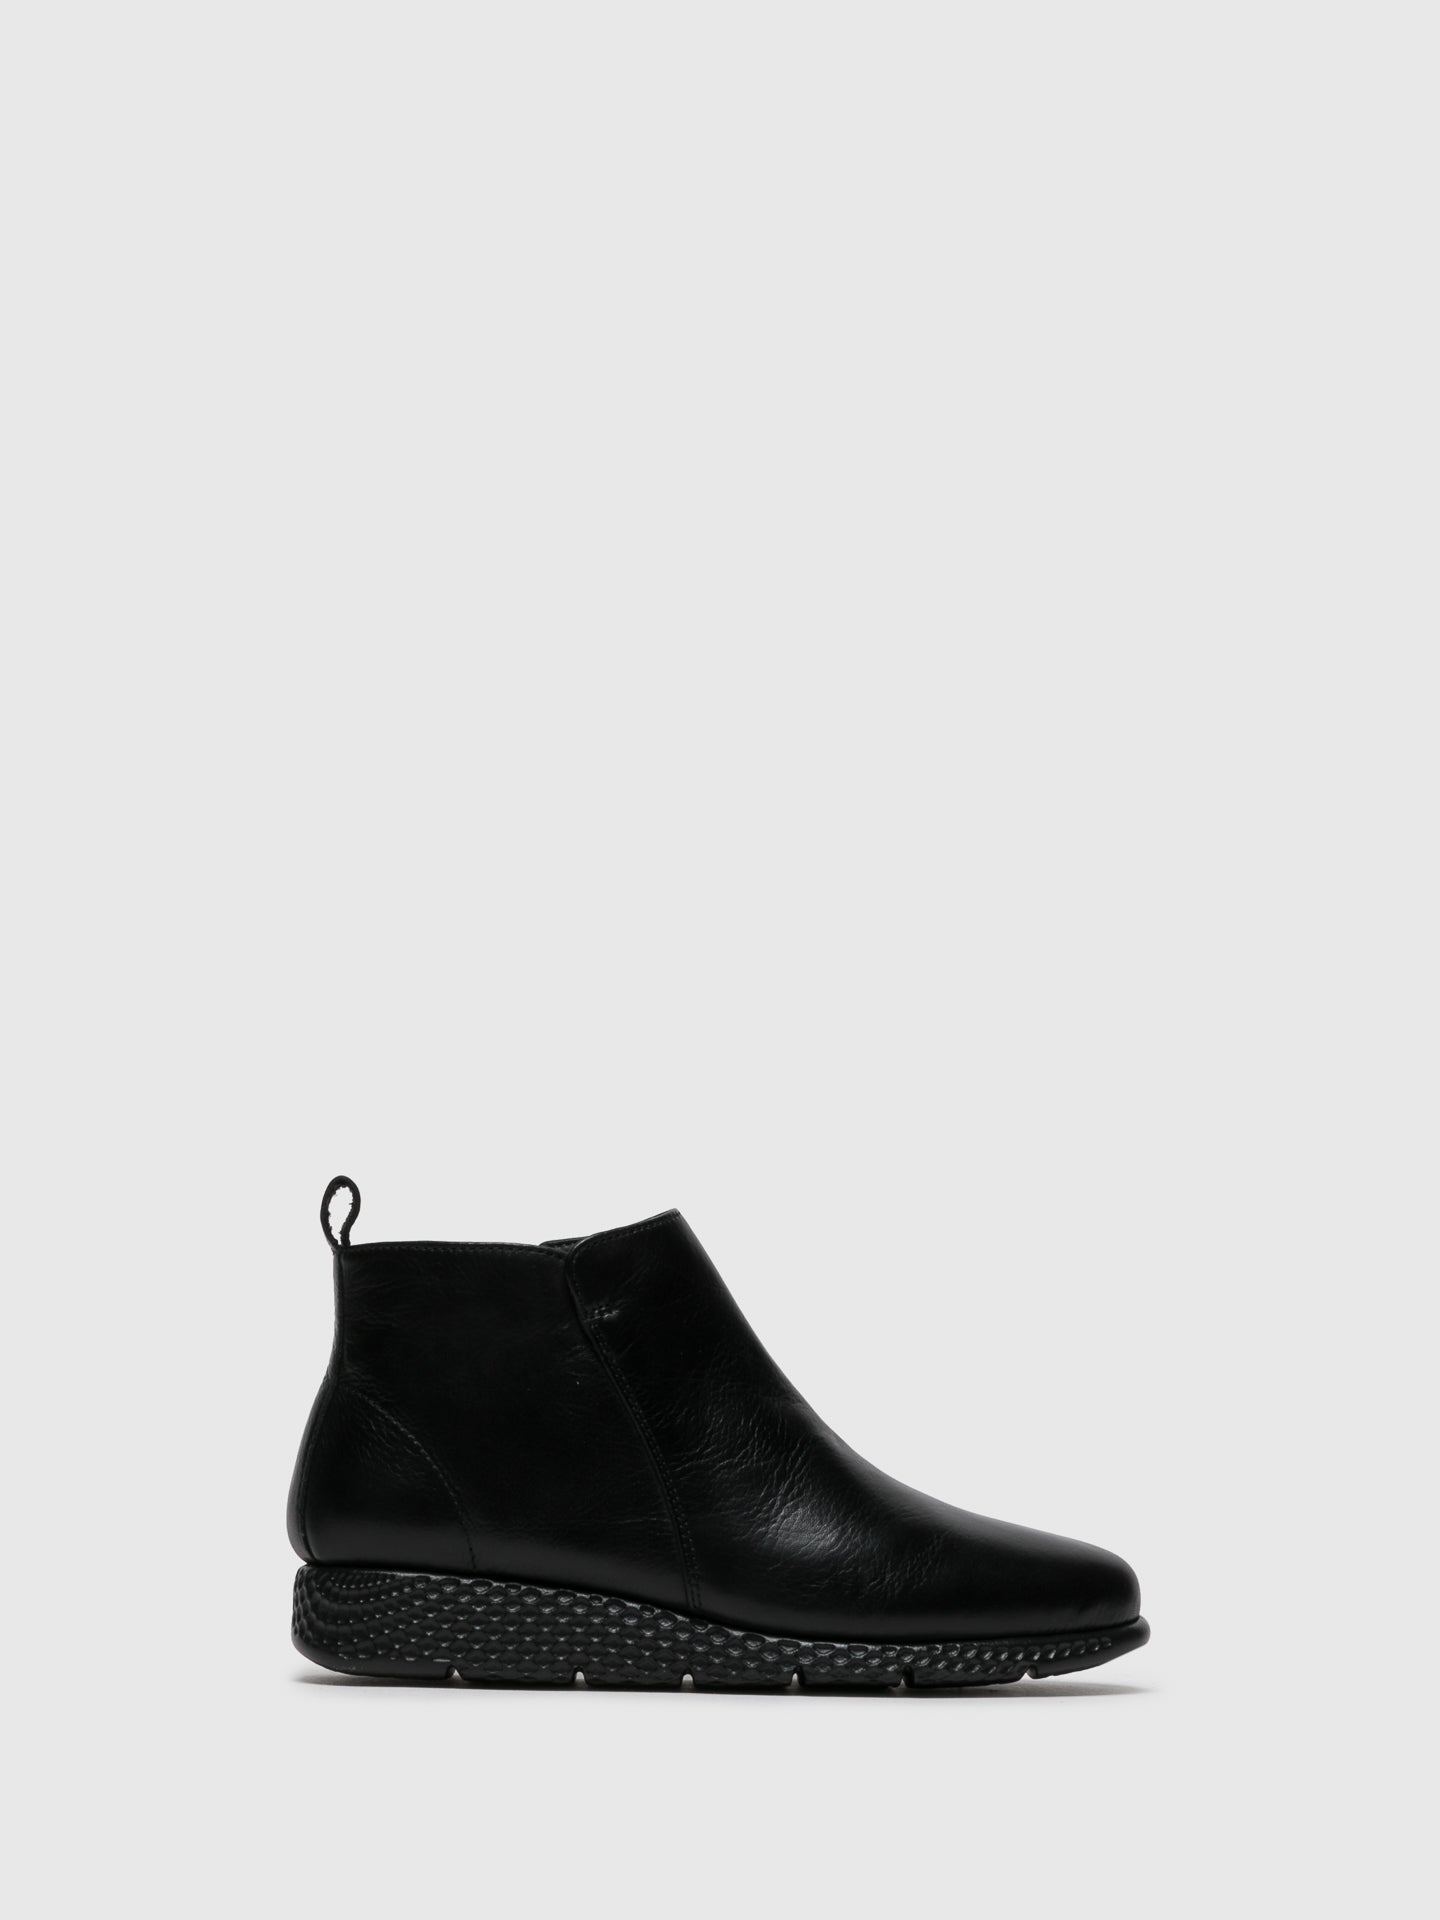 Saydo Black Zip Up Ankle Boots